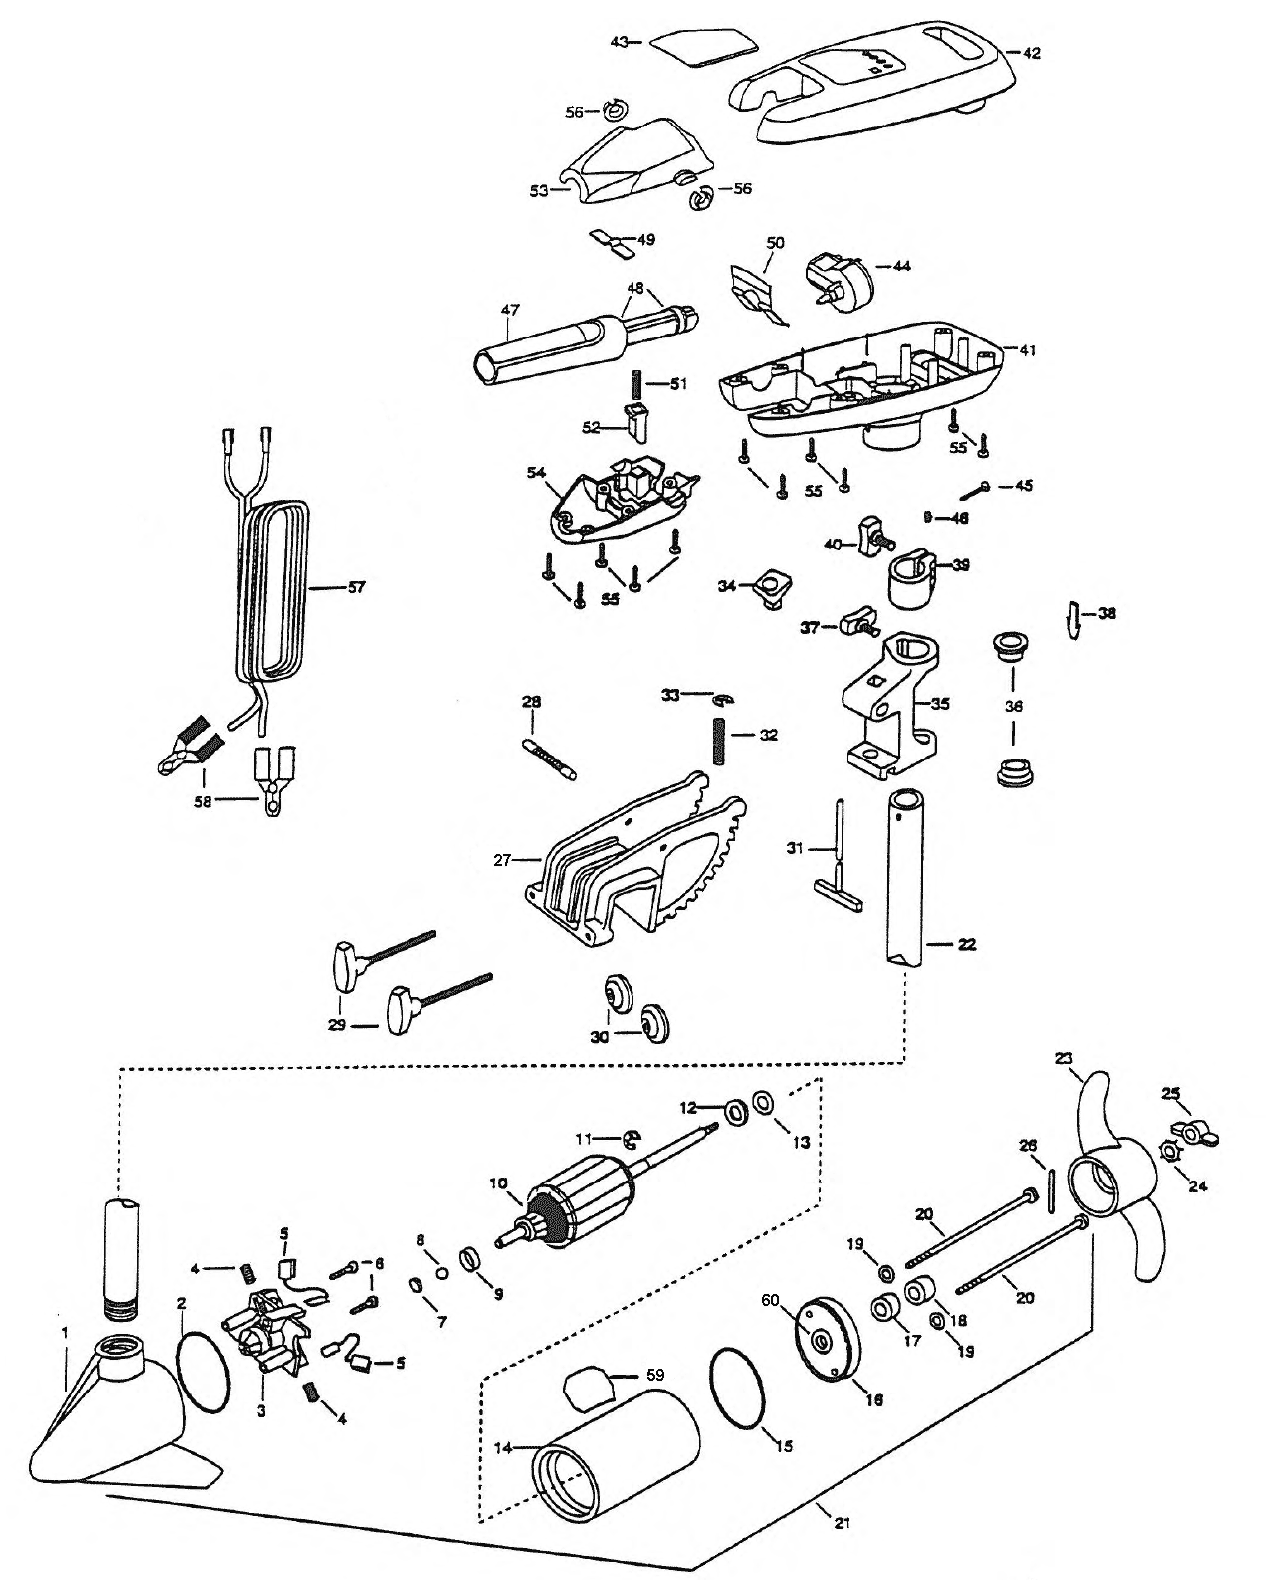 Wireless Trolling Motor Diagram